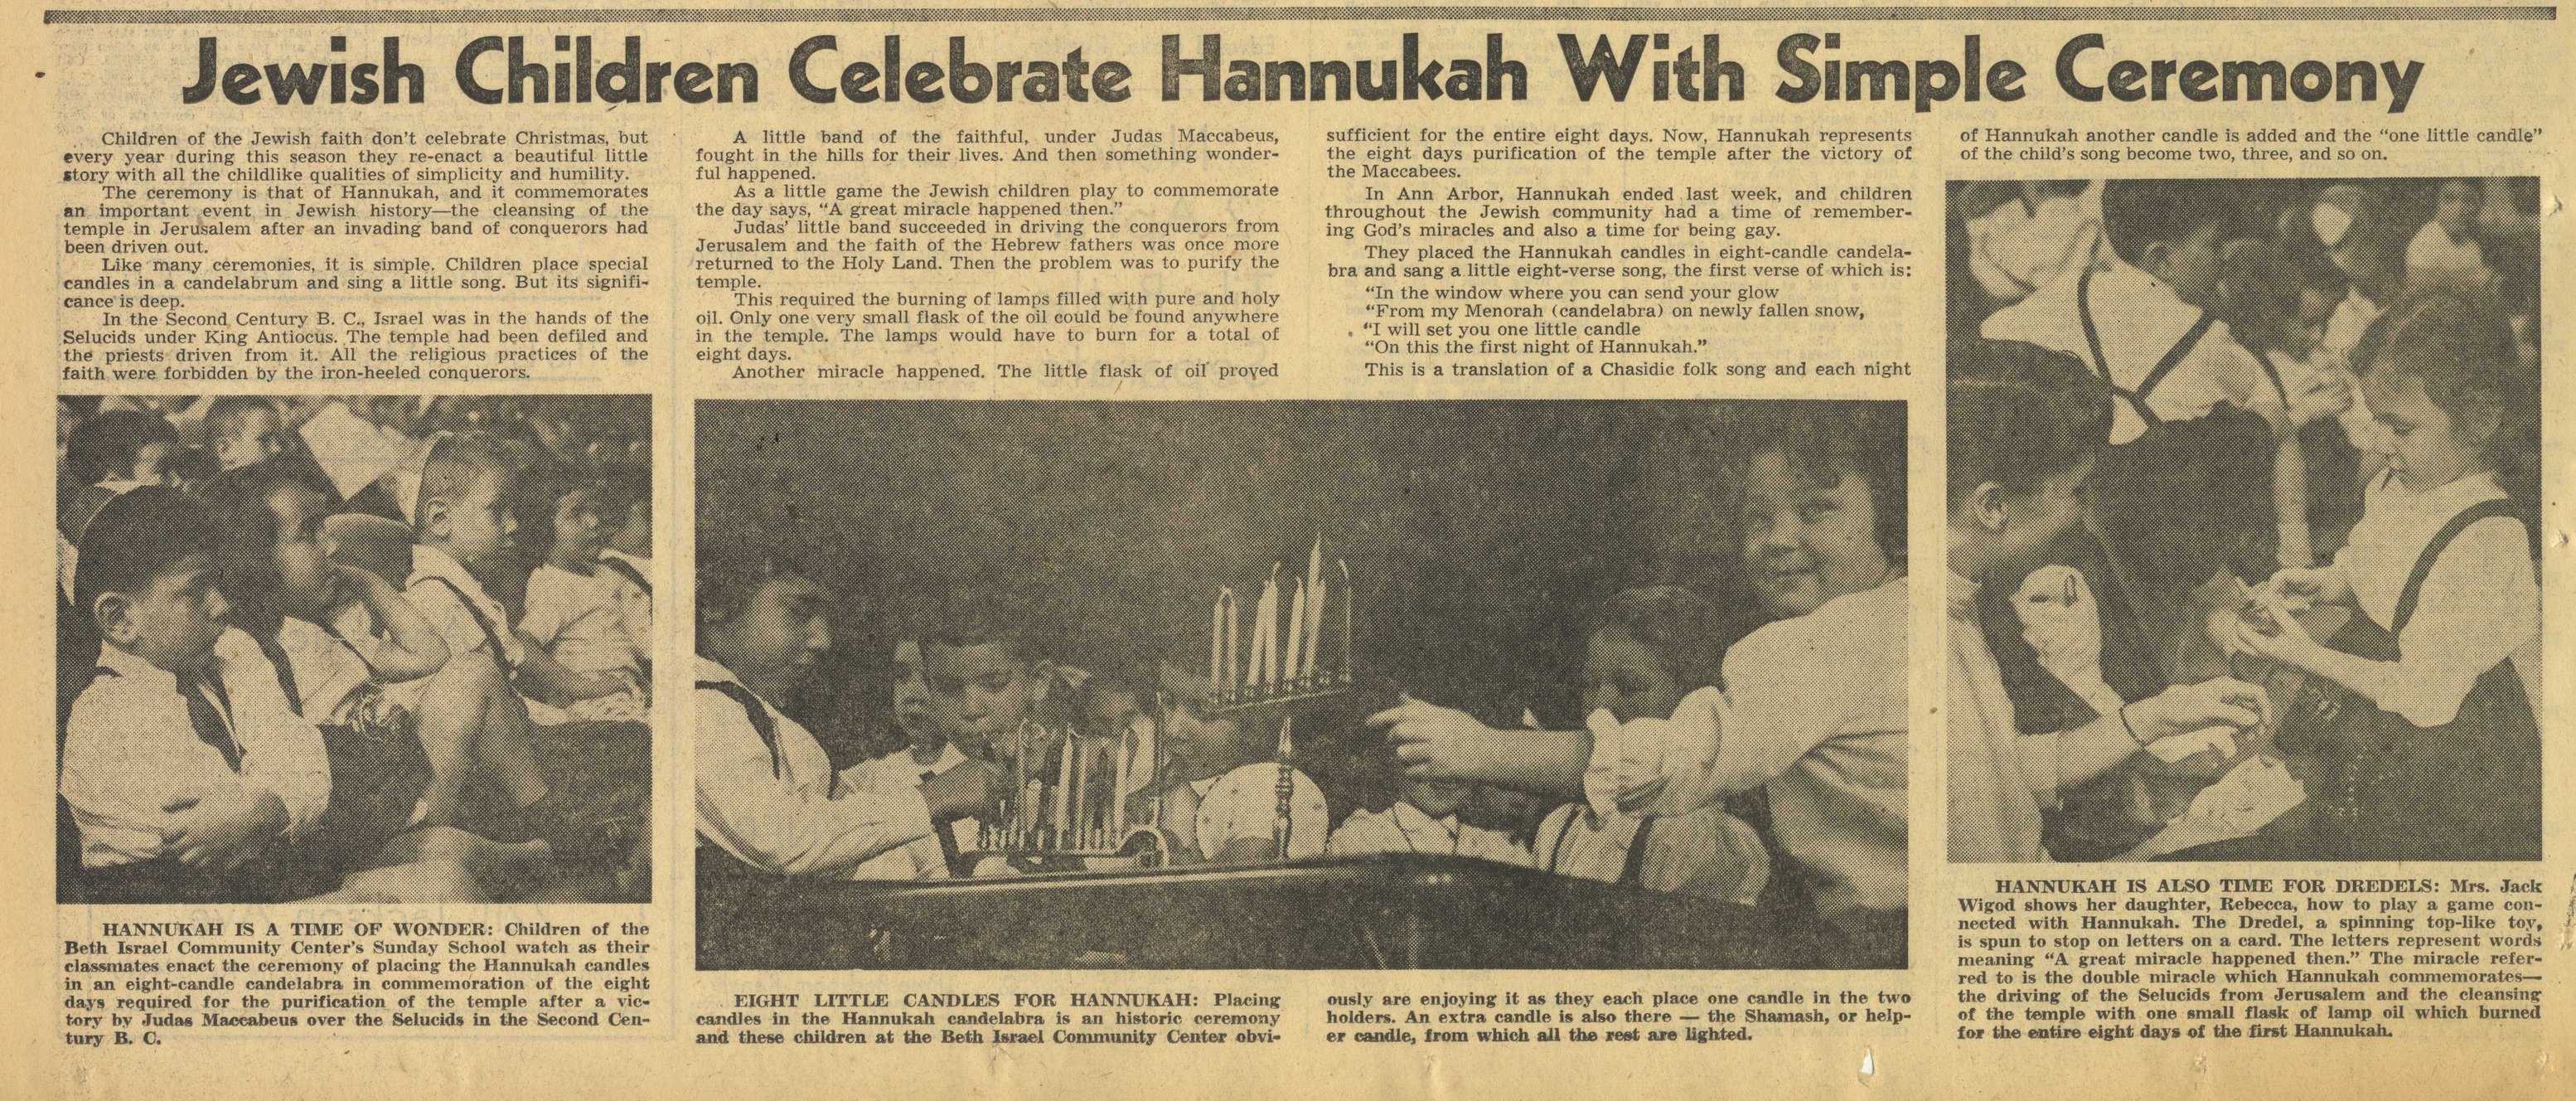 Jewish Children Celebrate Hannukah With Simple Ceremony image